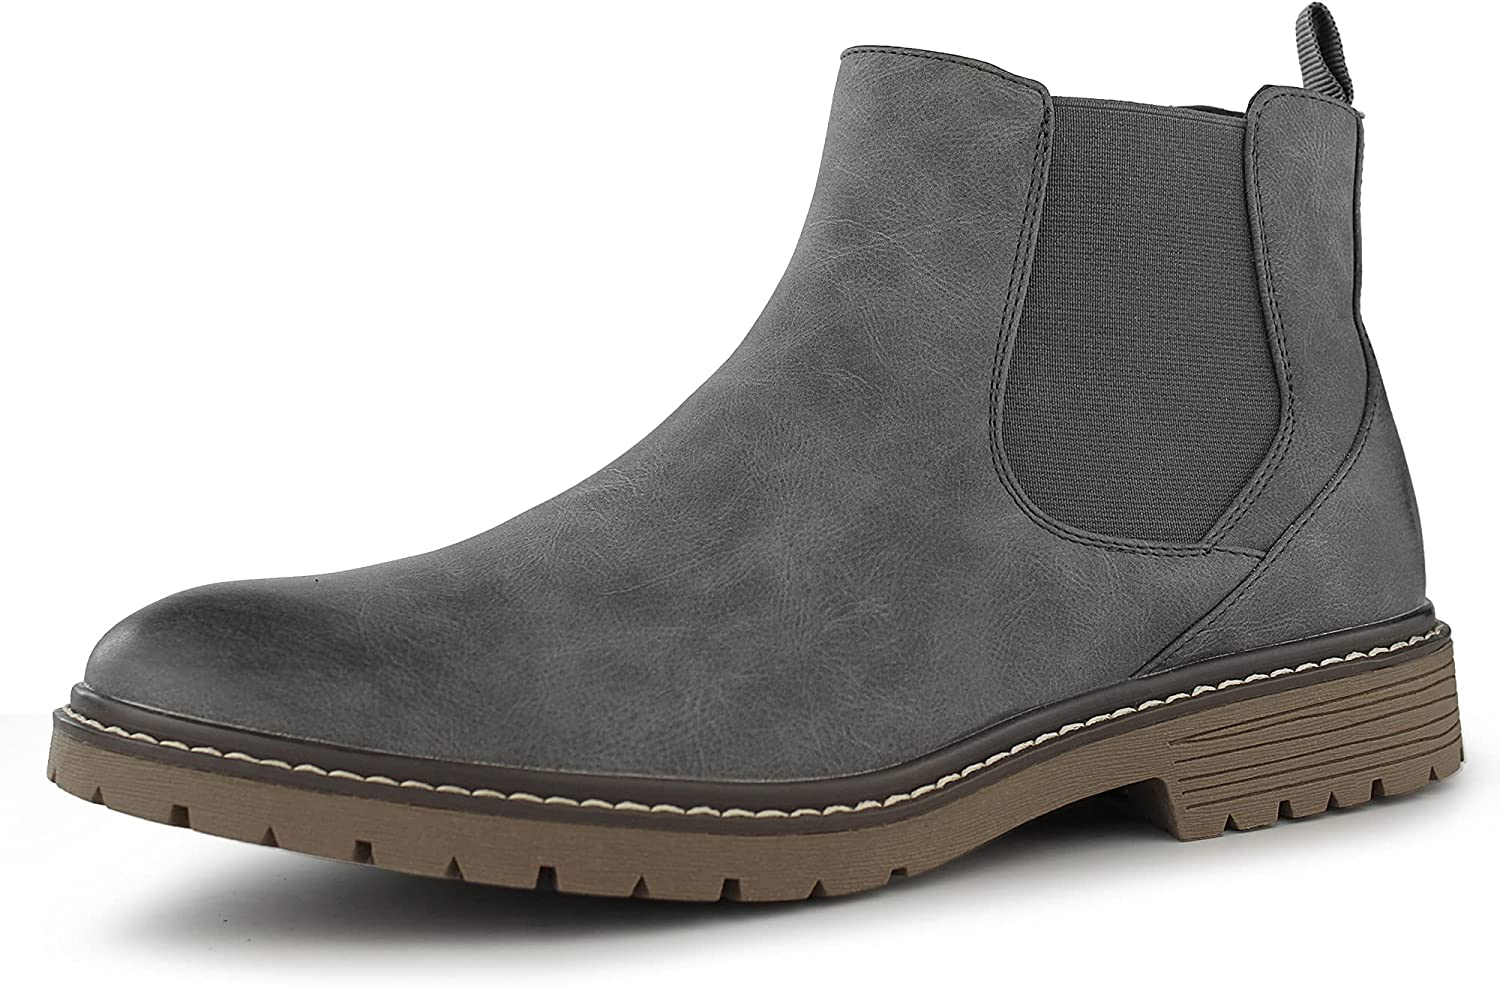 MERRYLAND Men's Casual High quality Dress Lowest price challenge Ankle Boots Chelsea